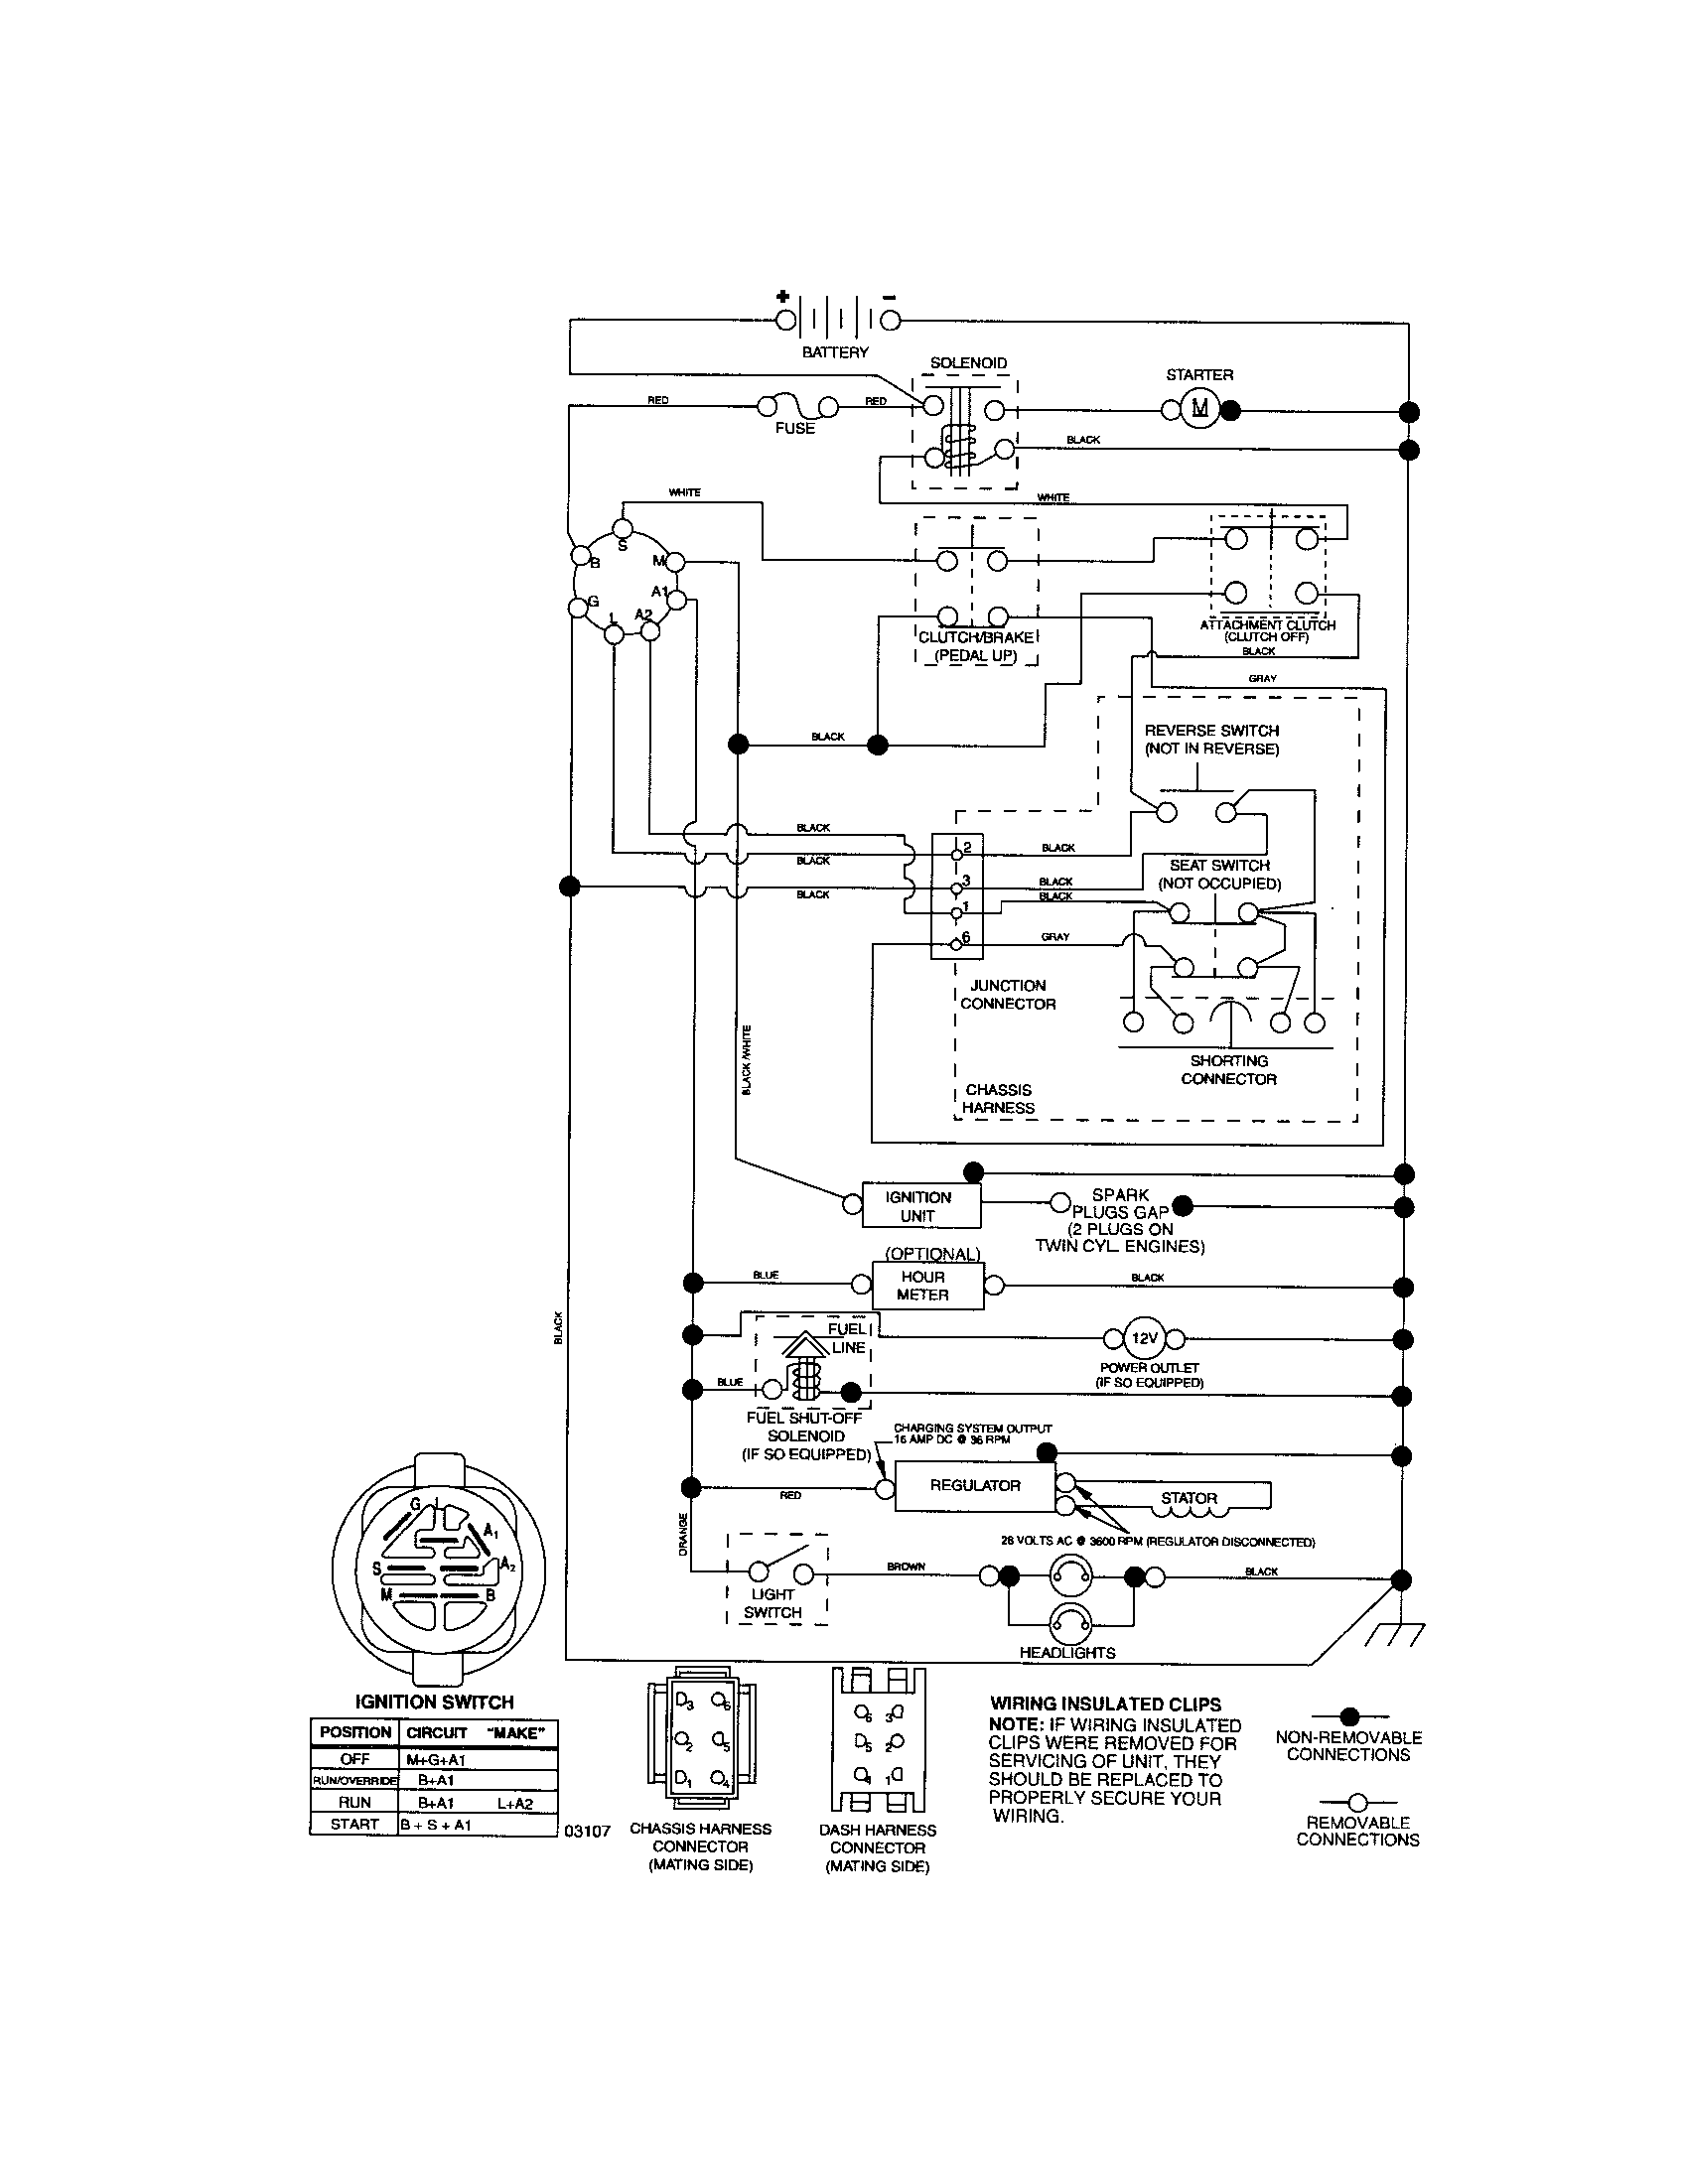 6af5f1447fd13c8443376822ddc1e105 craftsman riding mower electrical diagram wiring diagram simple chevy tbi wiring harness diagram at mifinder.co